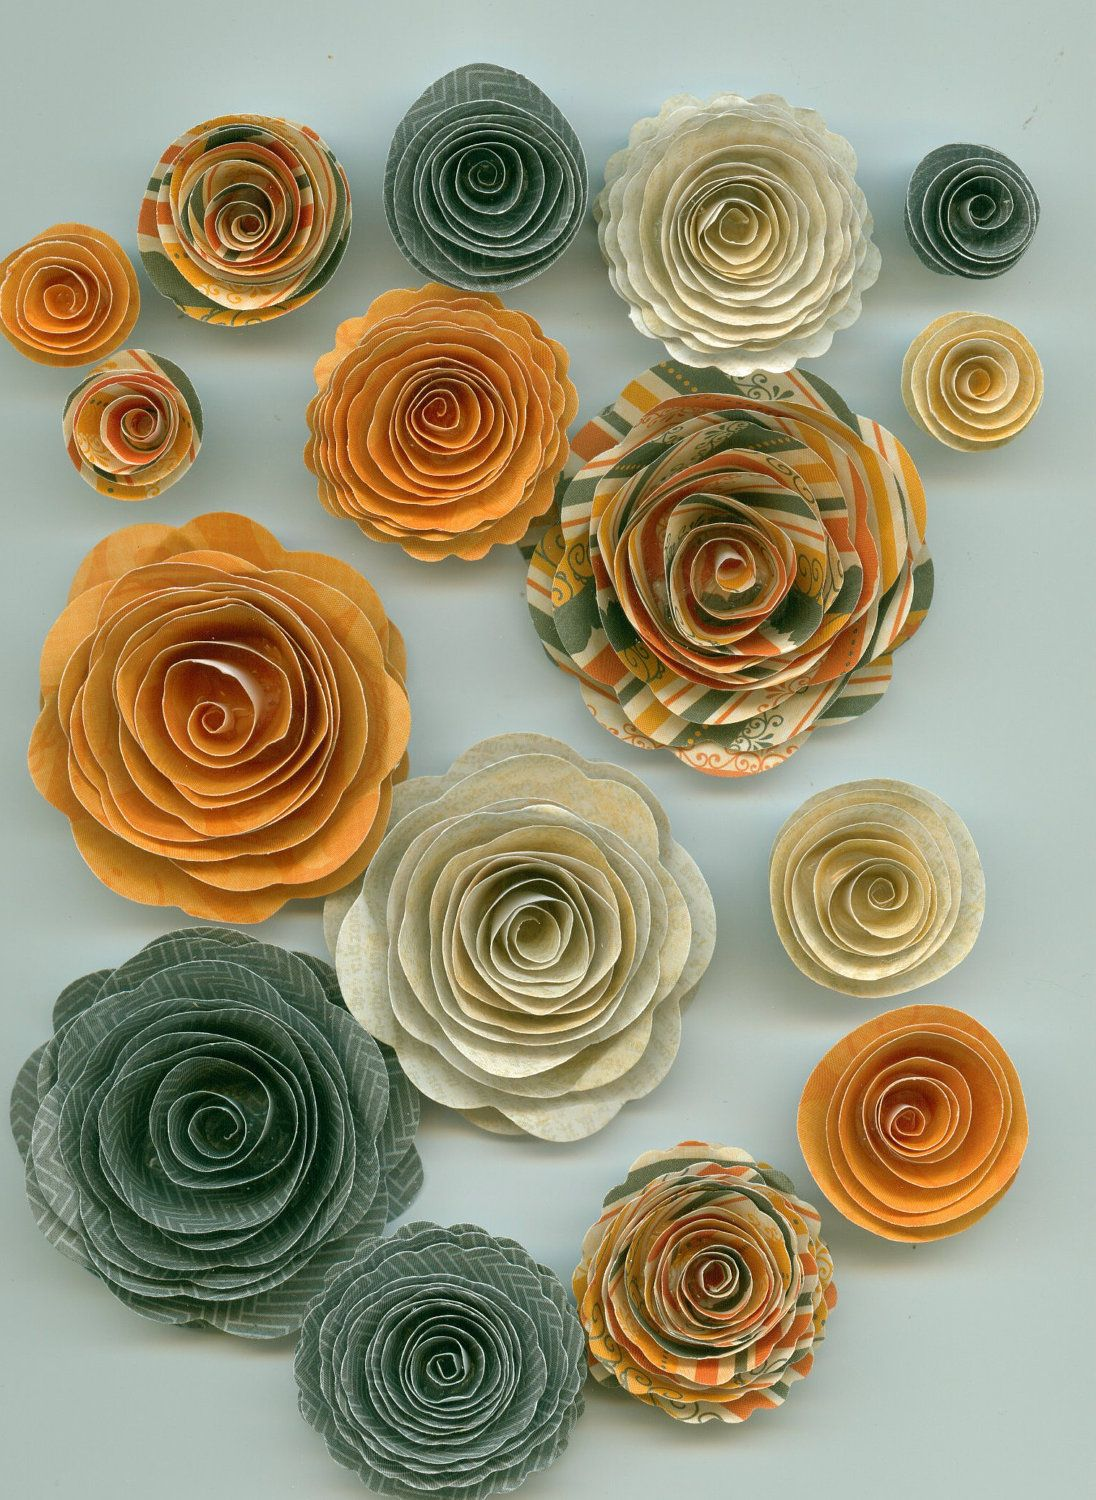 Halloween Handmade Spiral Paper Flowers Eerie Grey Ghost White And